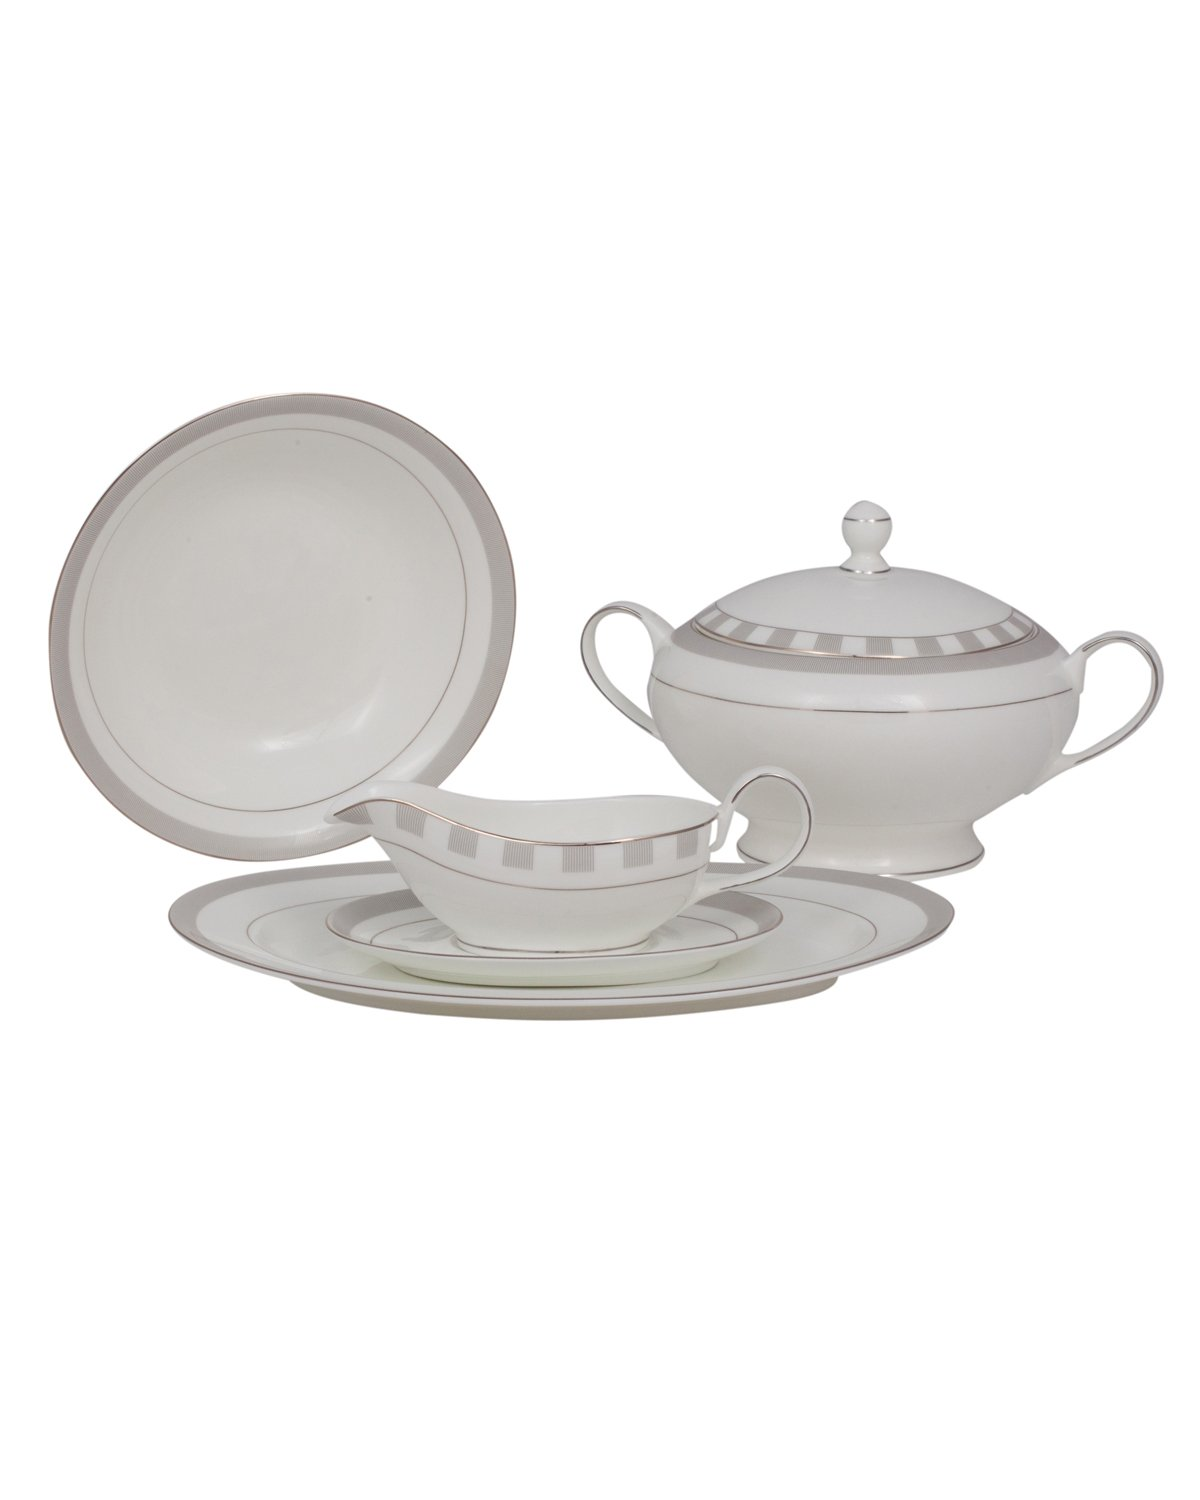 SPECTRUM  BONE CHINA SPECIAL SERVING SET